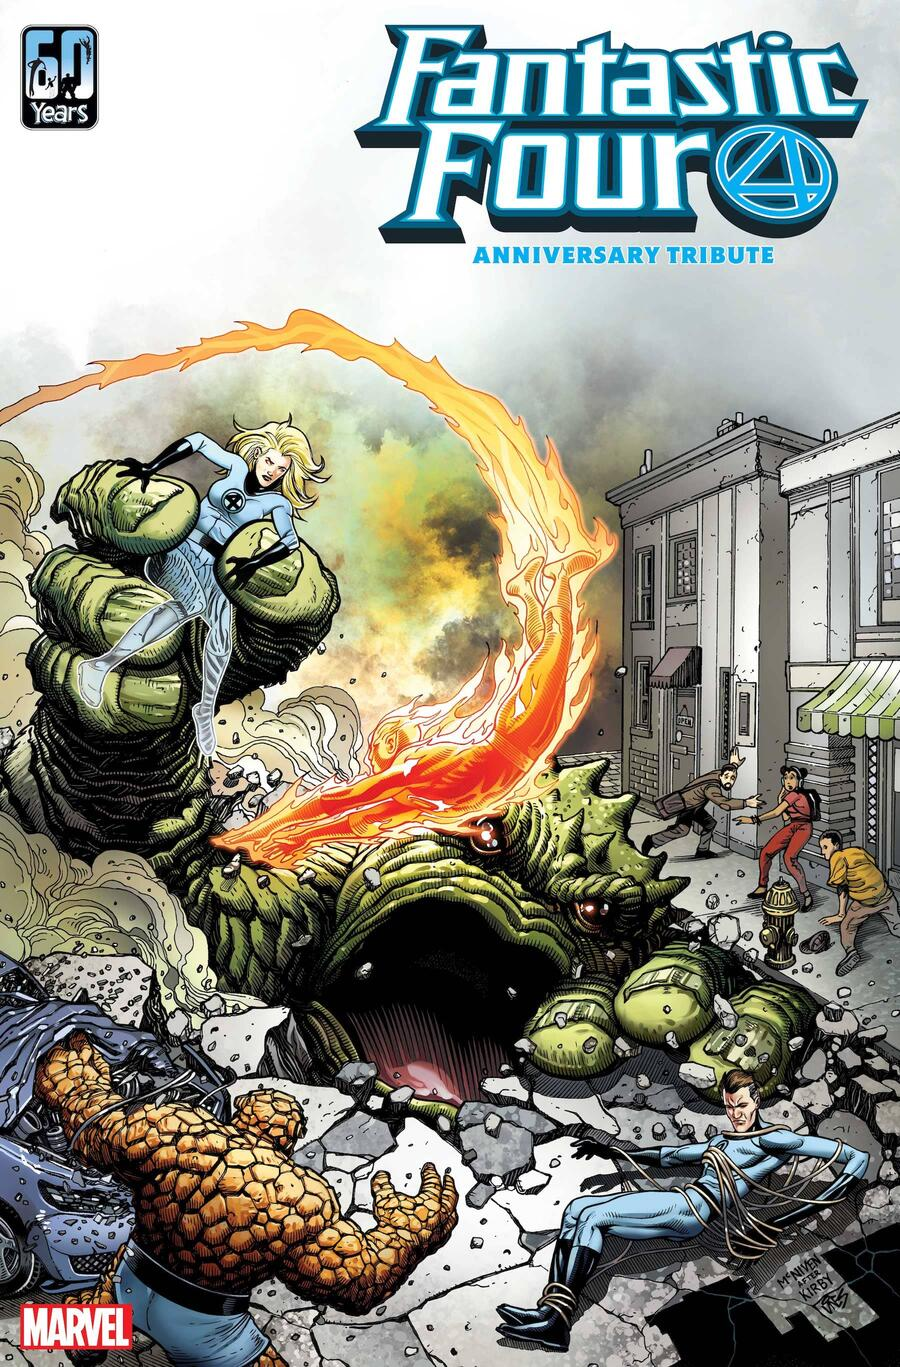 FANTASTIC FOUR ANNIVERSARY TRIBUTE #1 cover by Steve McNiven